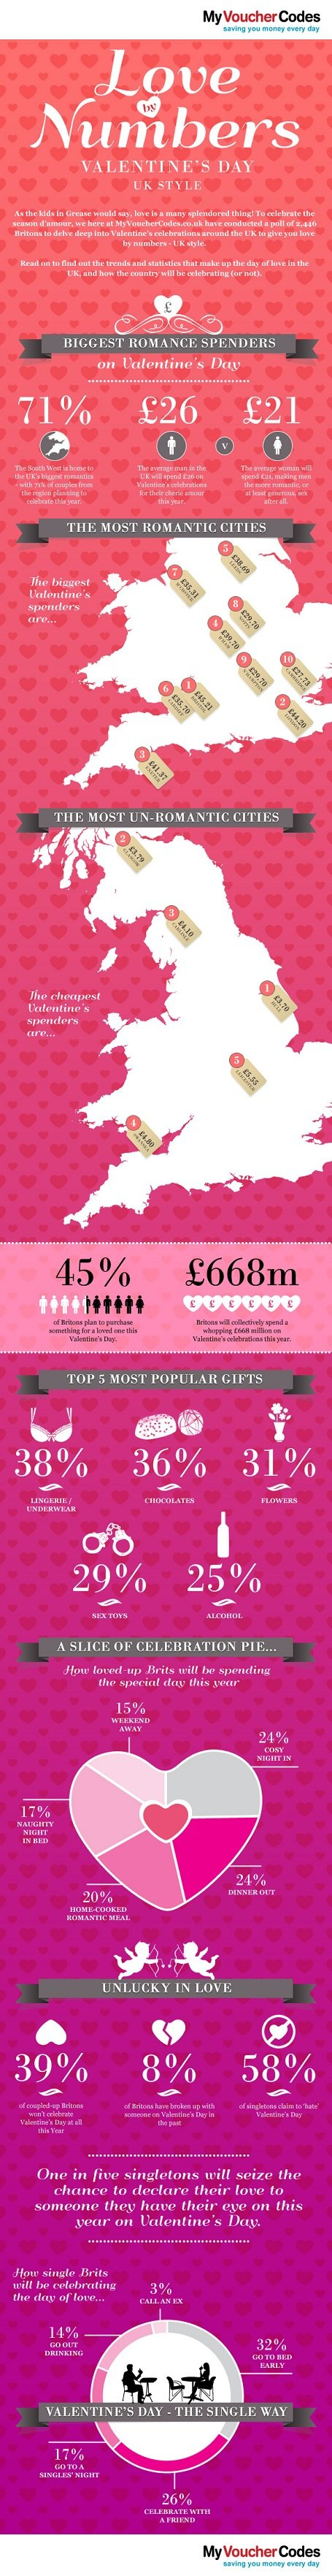 Love by numbers #infographic